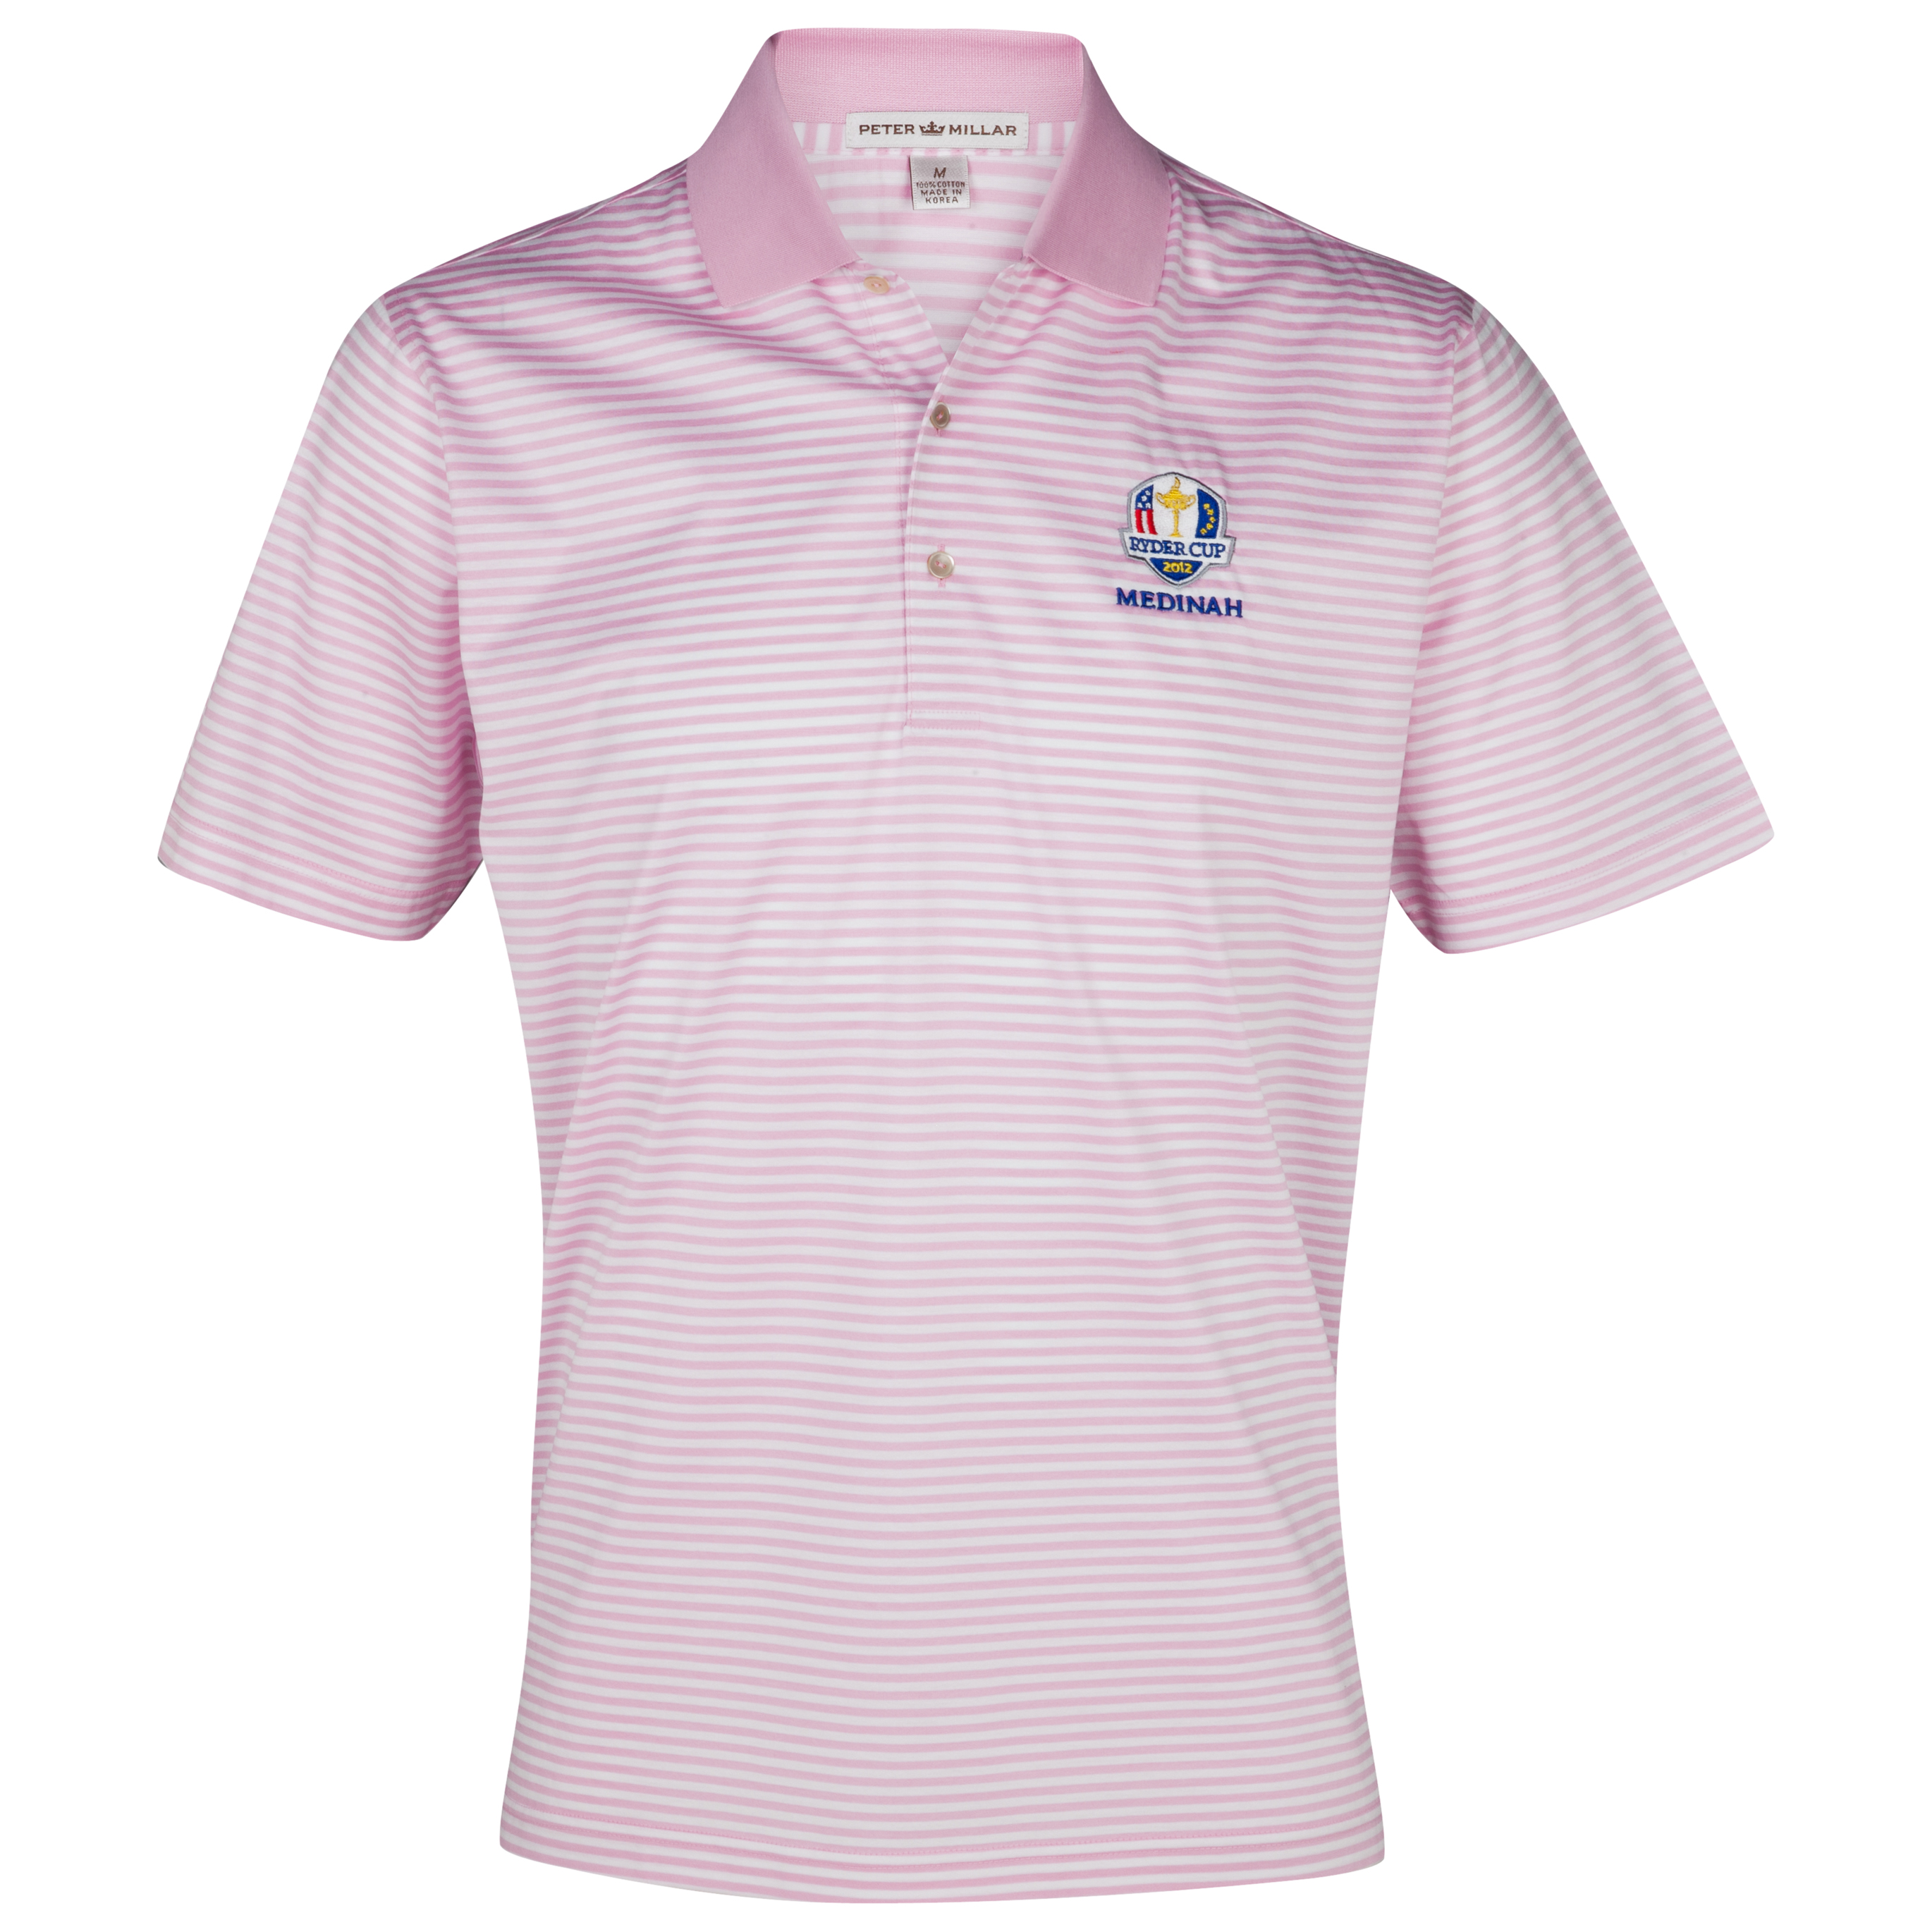 The Ryder Cup Medinah 2012 Peter Millar Luxury Stripe Polo - Retro Pink/White